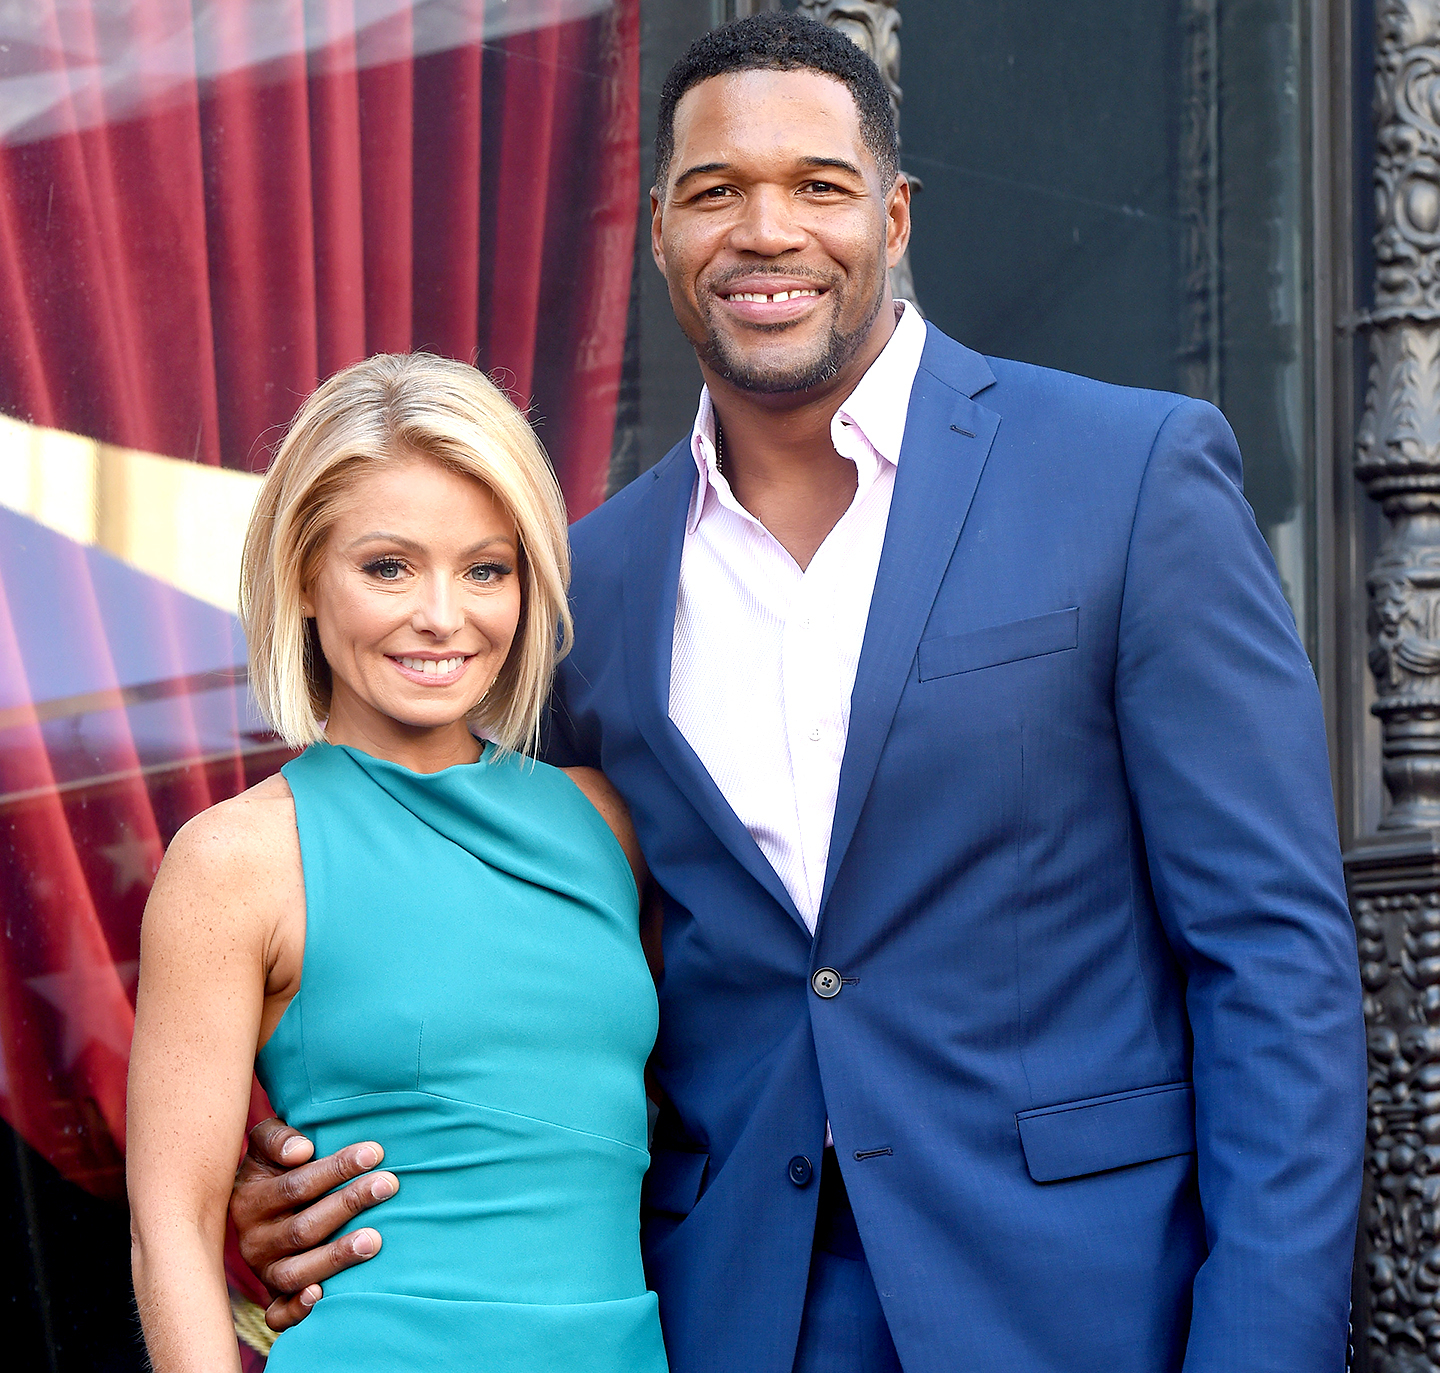 Kelly Ripa and Michael Strahan attend the ceremony honoring Kelly Ripa with a star on the Hollywood Walk of Fame on October 12, 2015.